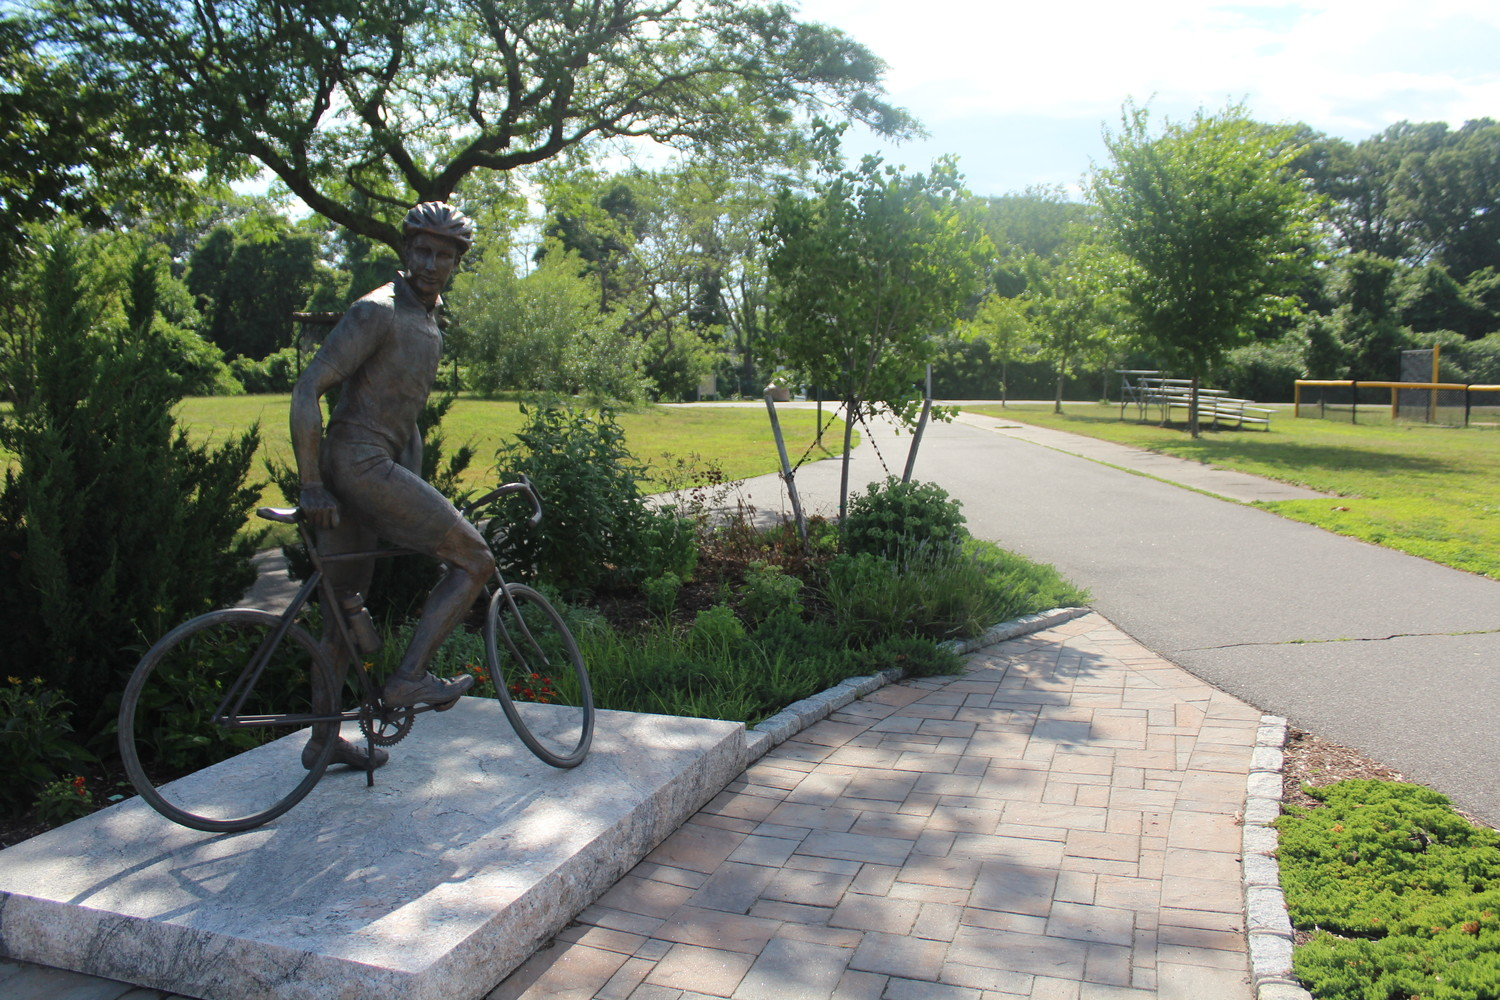 A statue of Matt Scarpati, who was struck and killed on the Jones Beach bike path in 2009, at Cedar Creek Park in Seaford, where the Miles for Matt bicycle marathons take place every year.